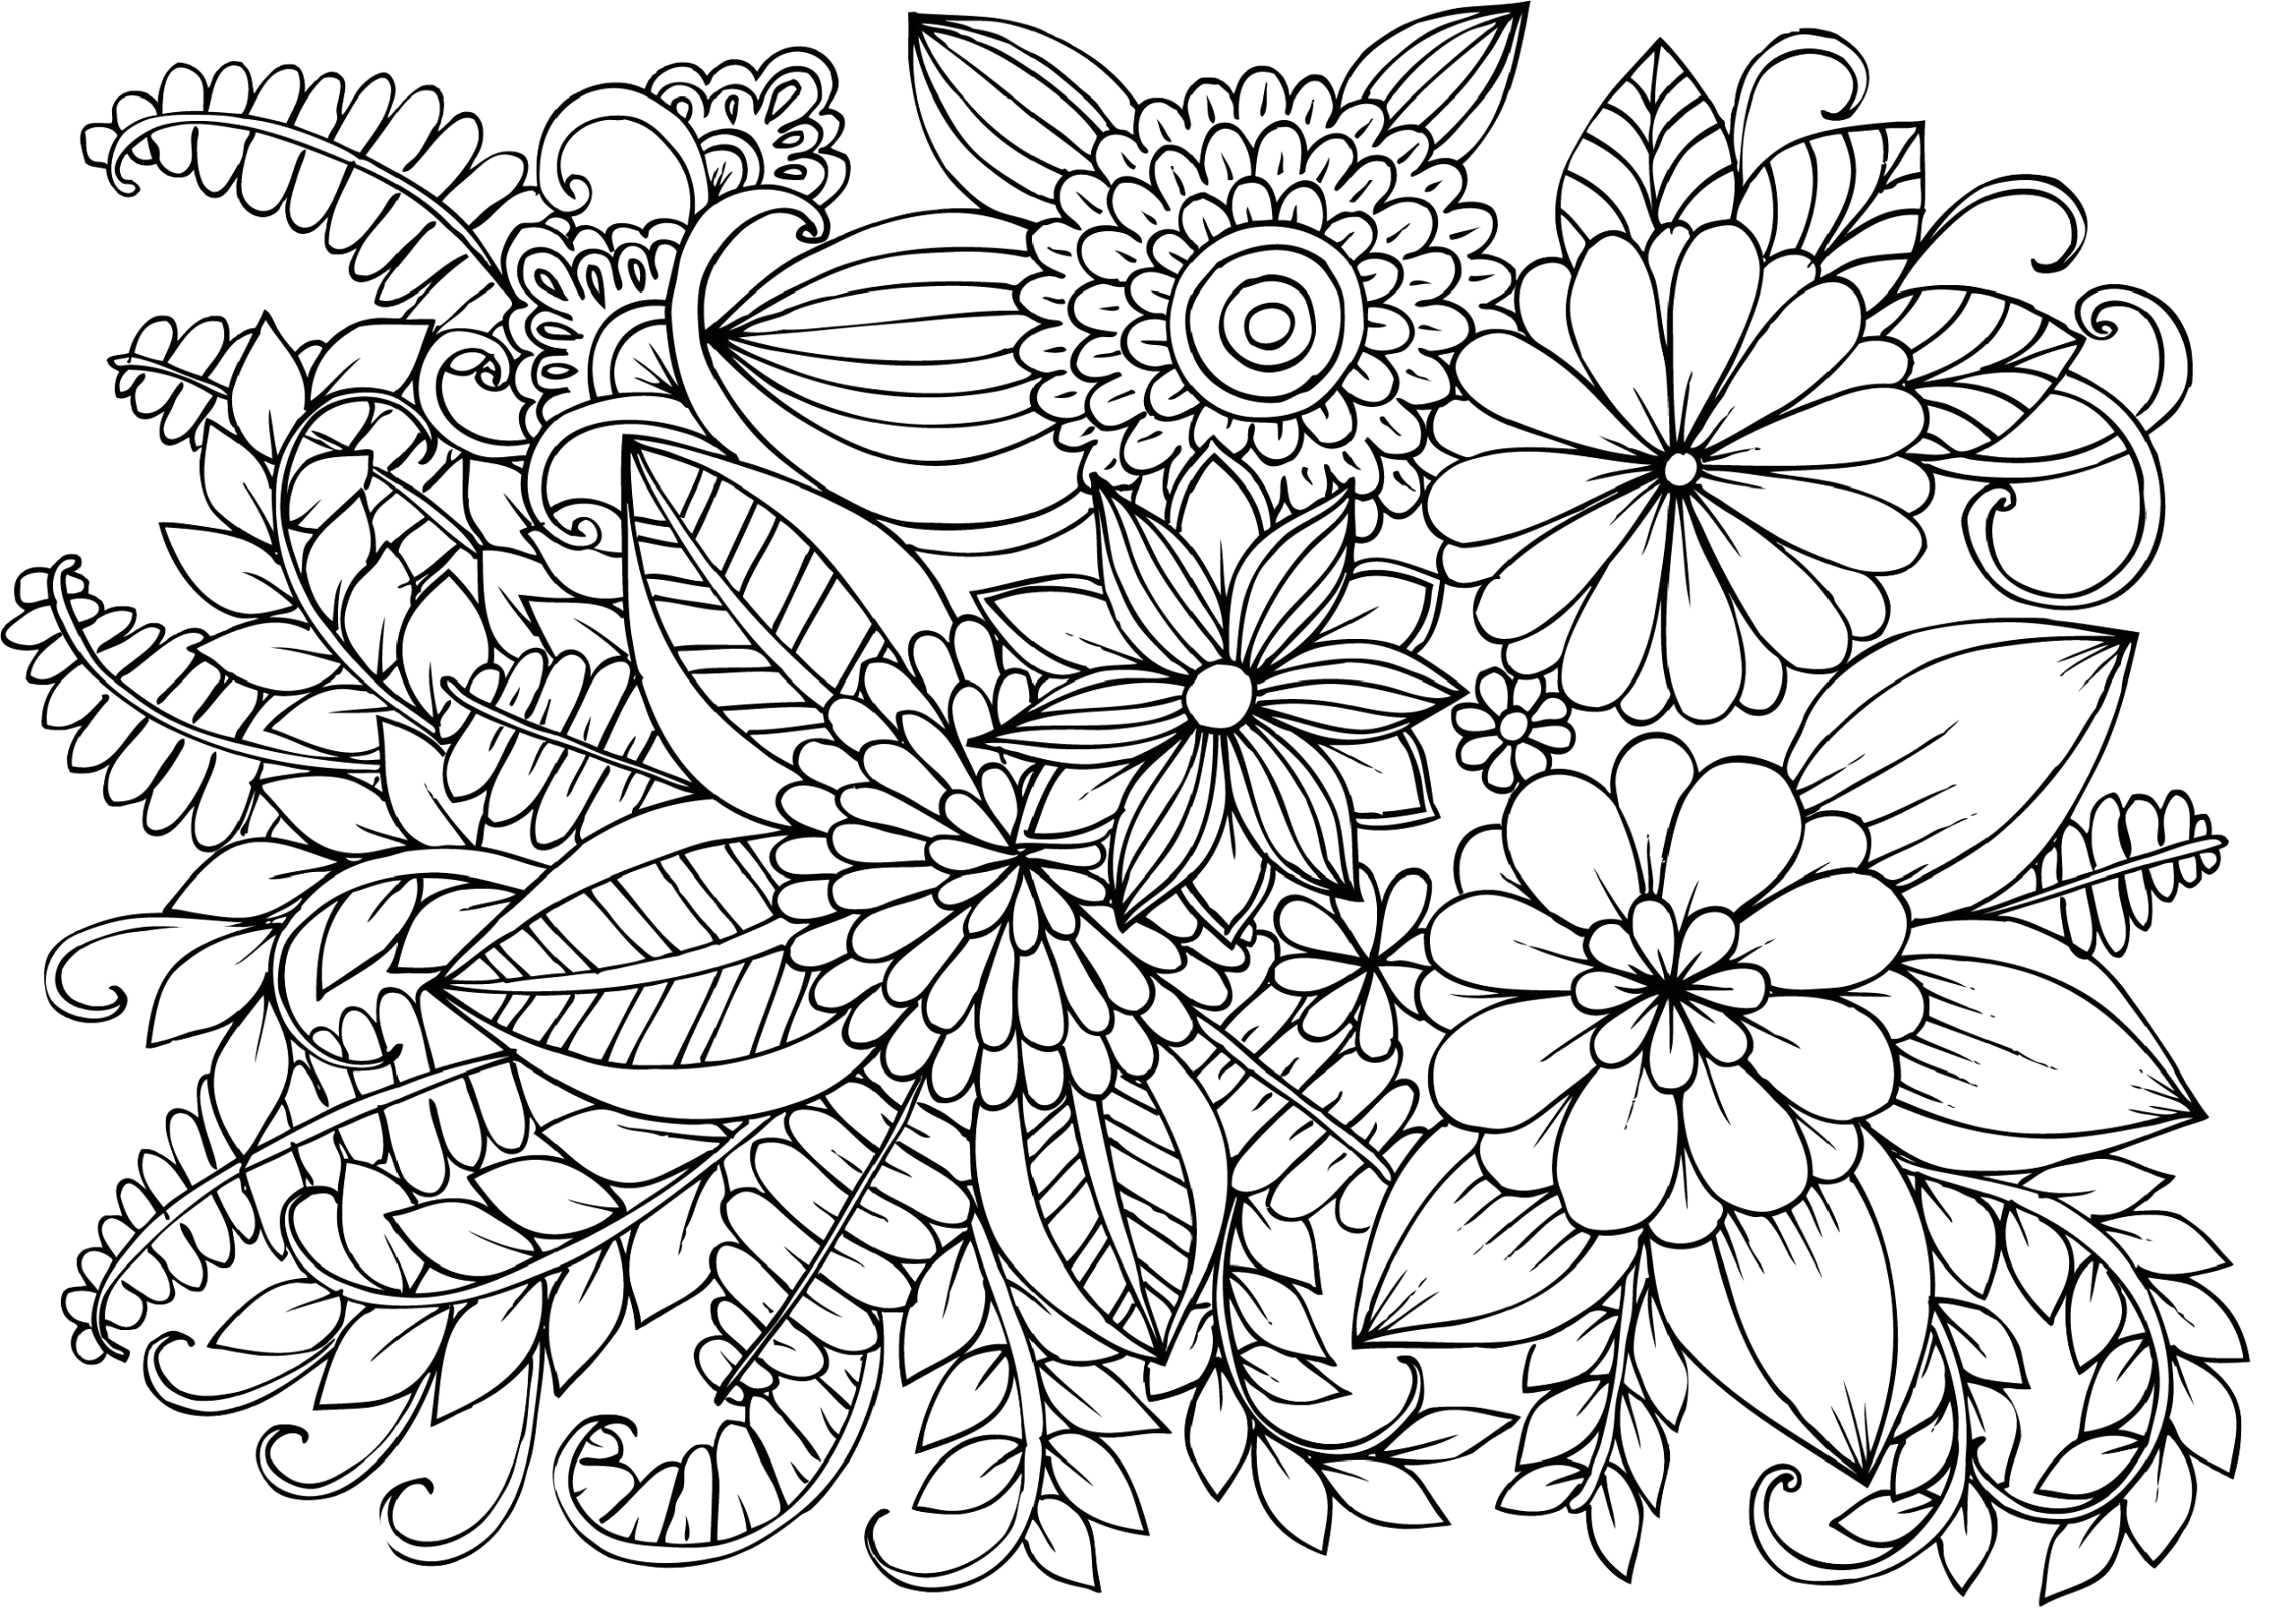 very detailed flowers coloring pages for adults hard to color all flowers